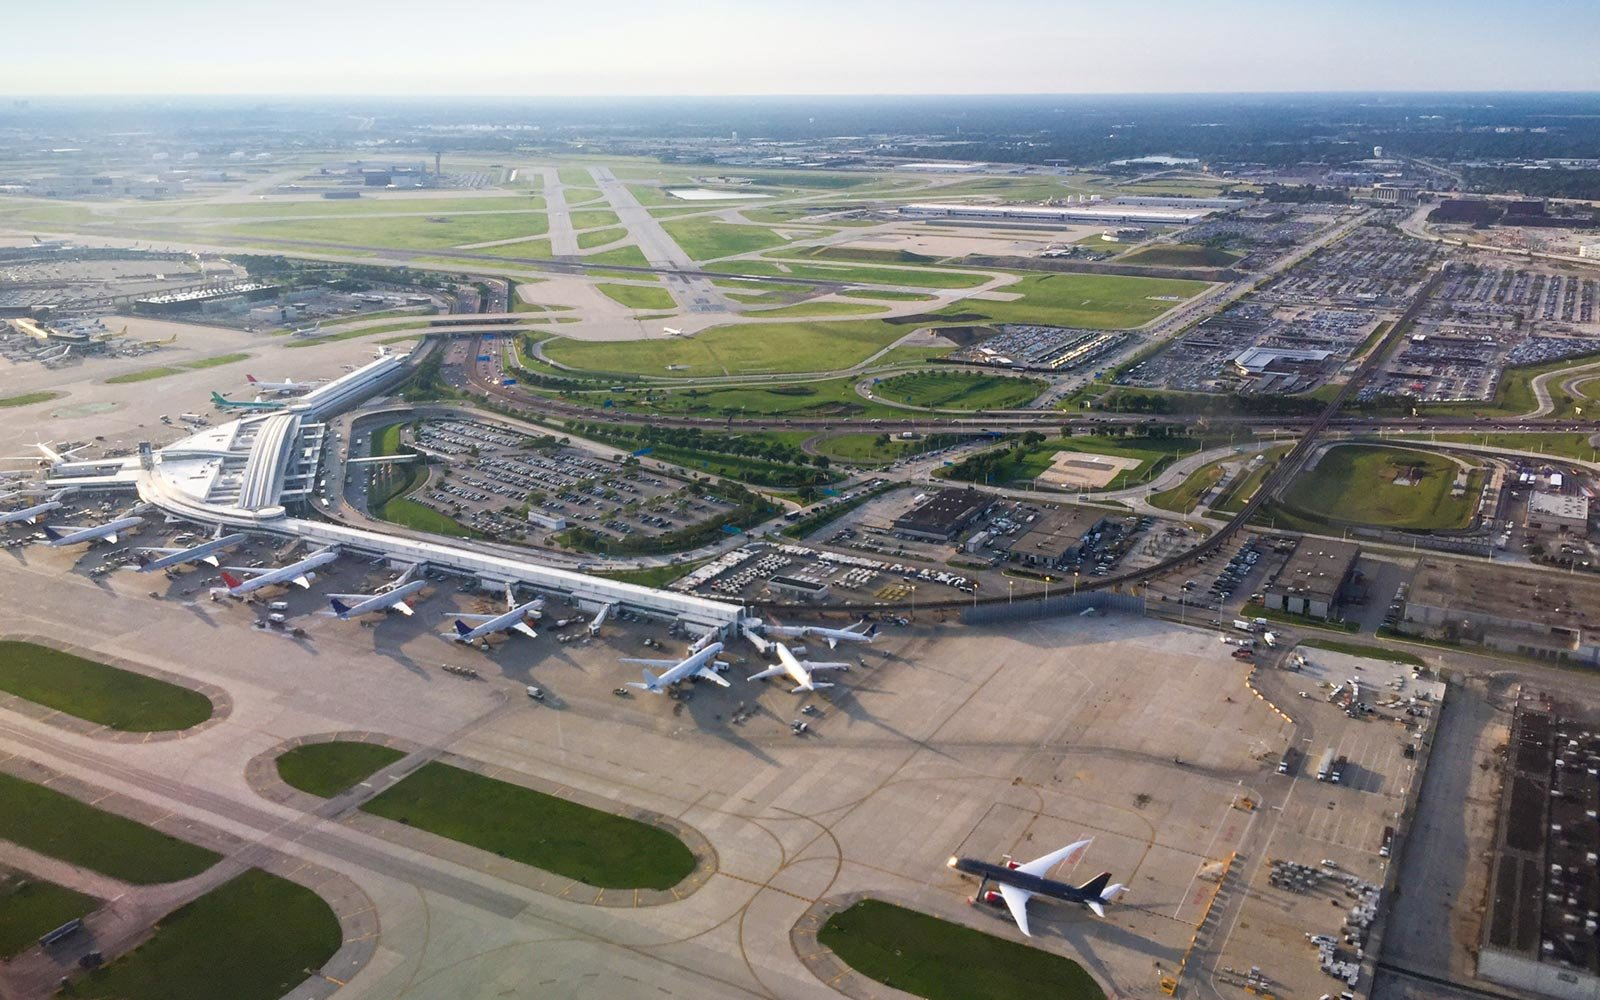 Chicago O'Hare International Airport, Illinois